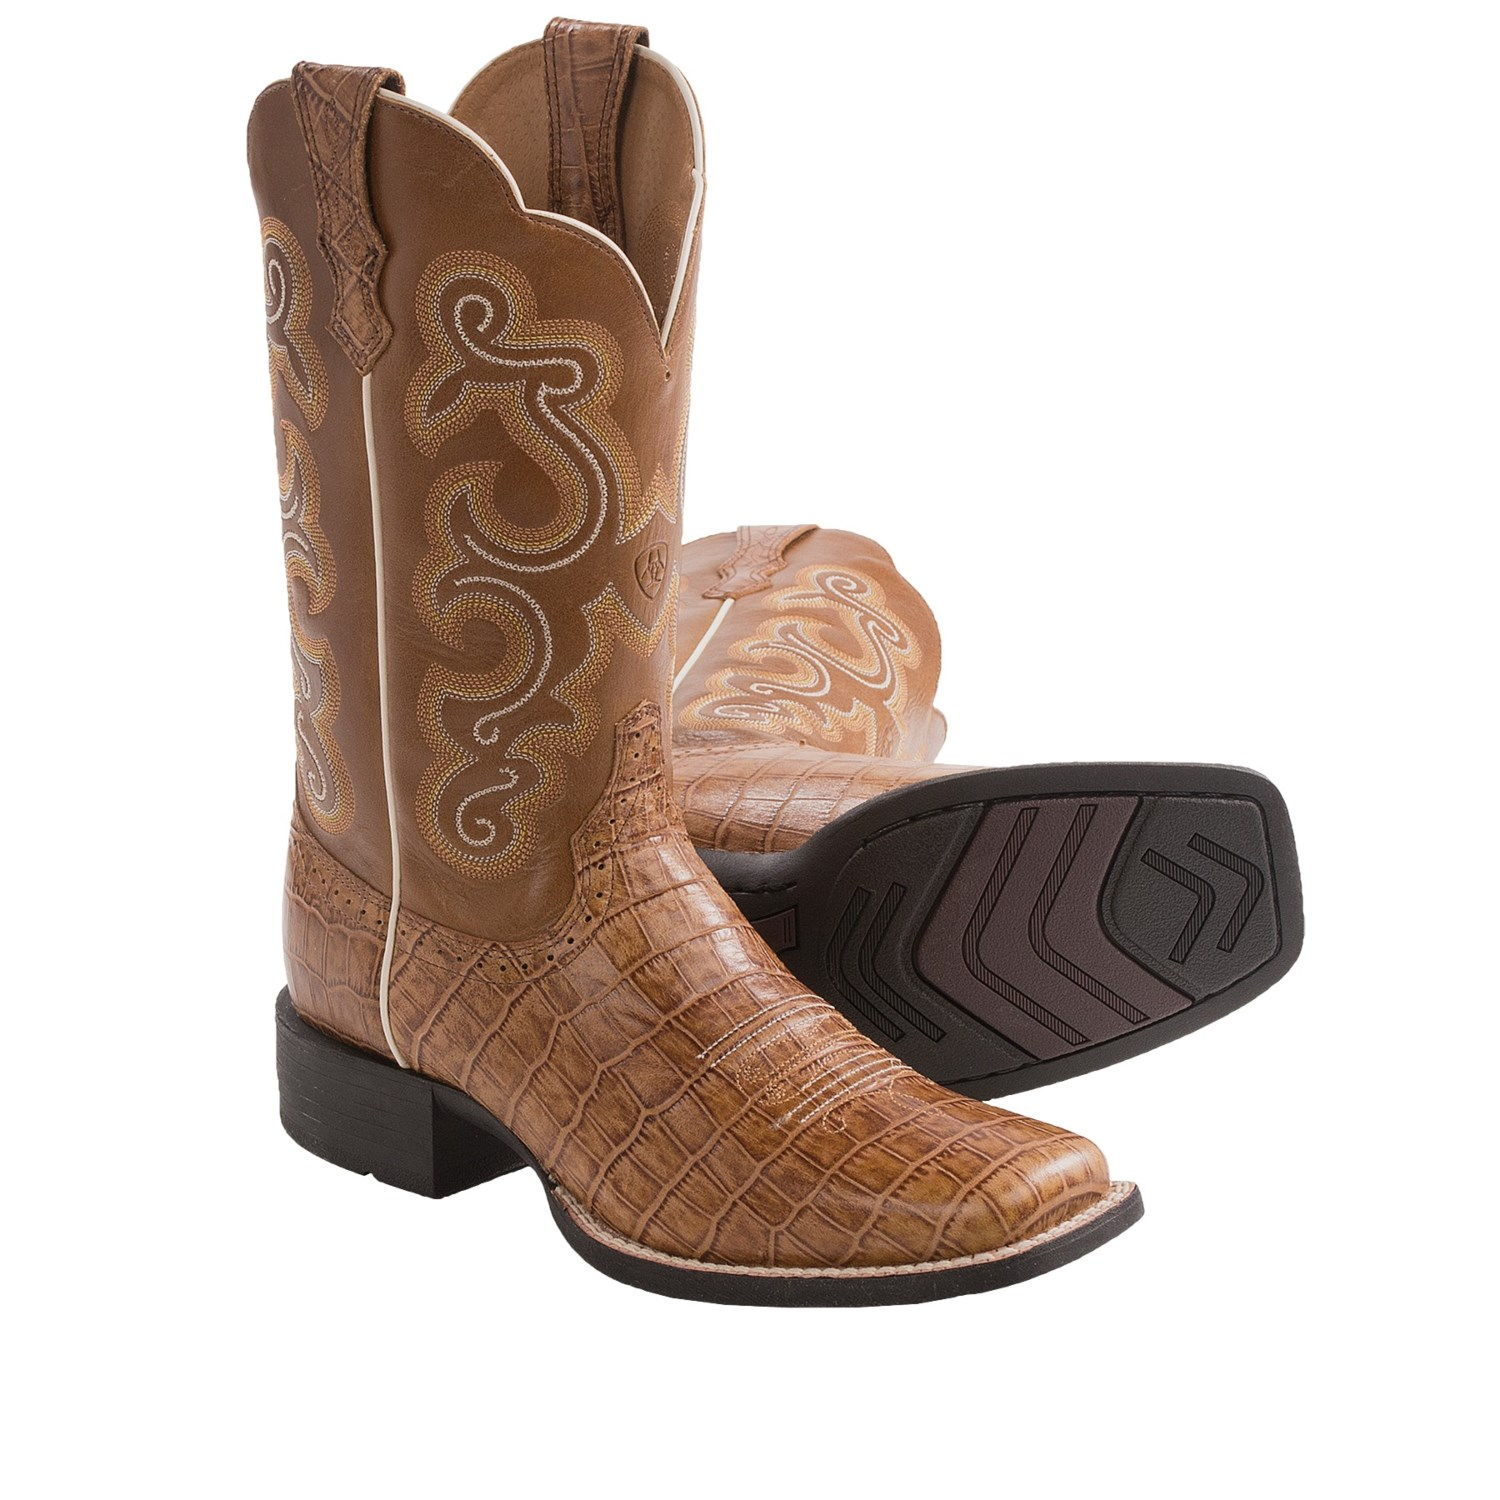 Cheap shoes online. Where to buy ariat boots